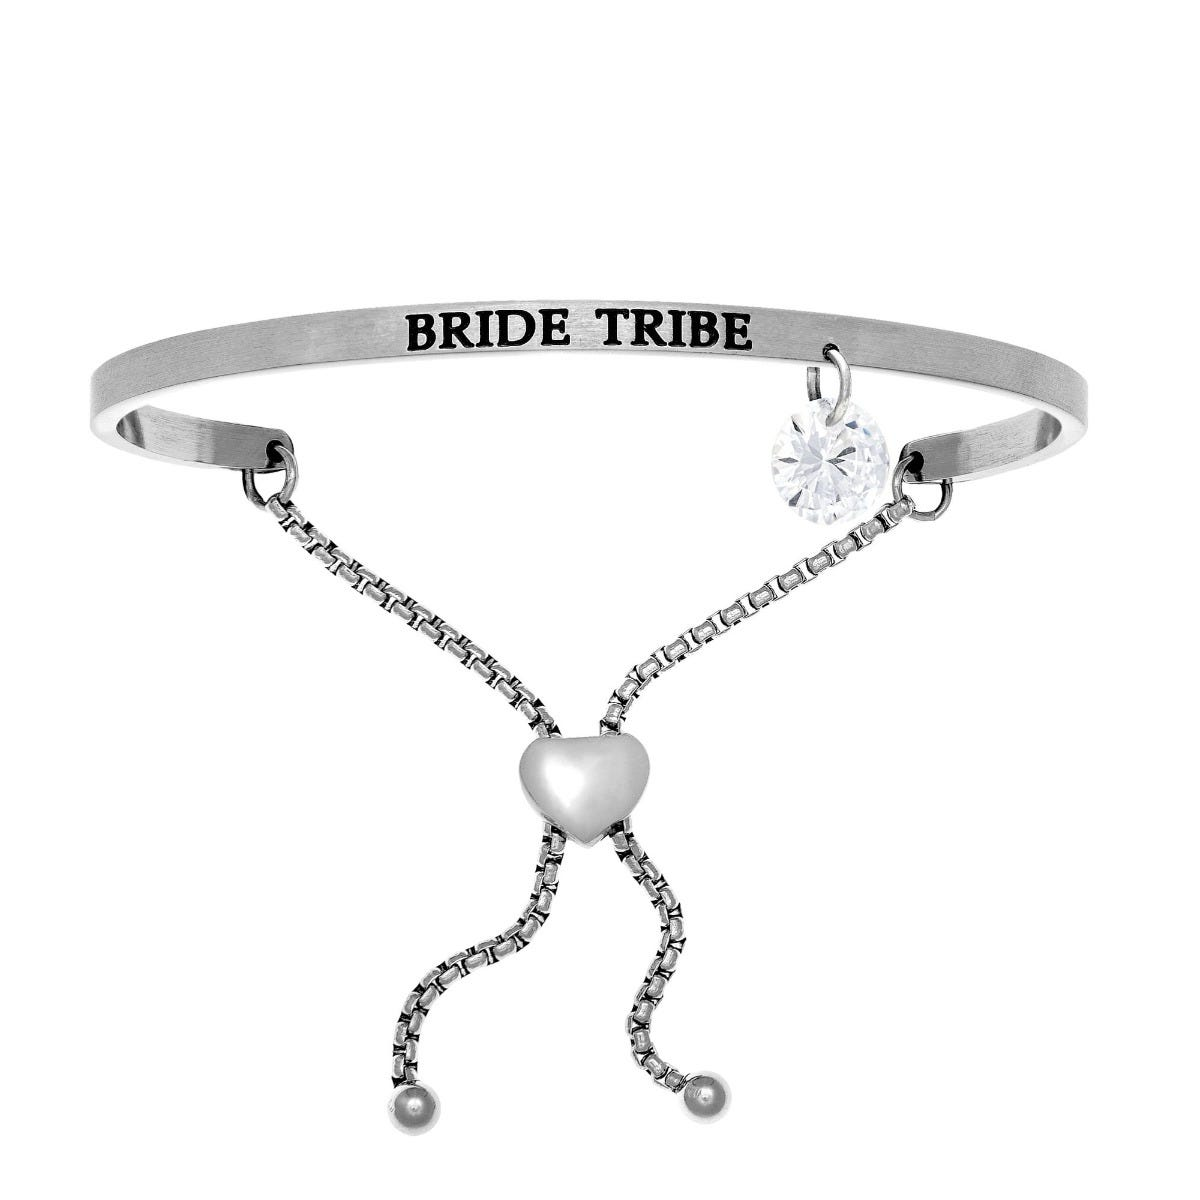 Bride Tribe. Intuitions Bolo Bracelet in White Stainless Steel